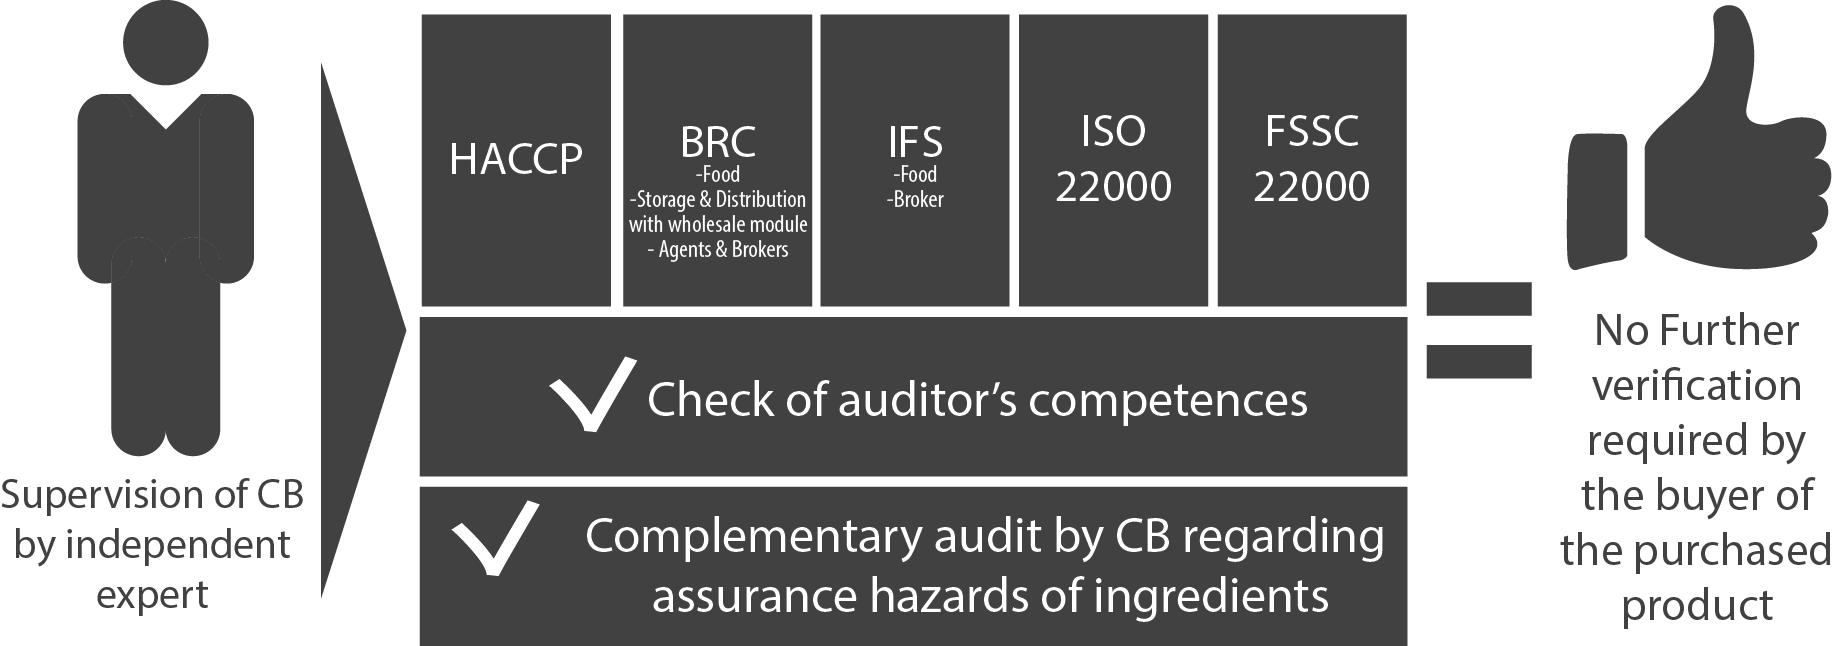 difference between fssc and iso 22000